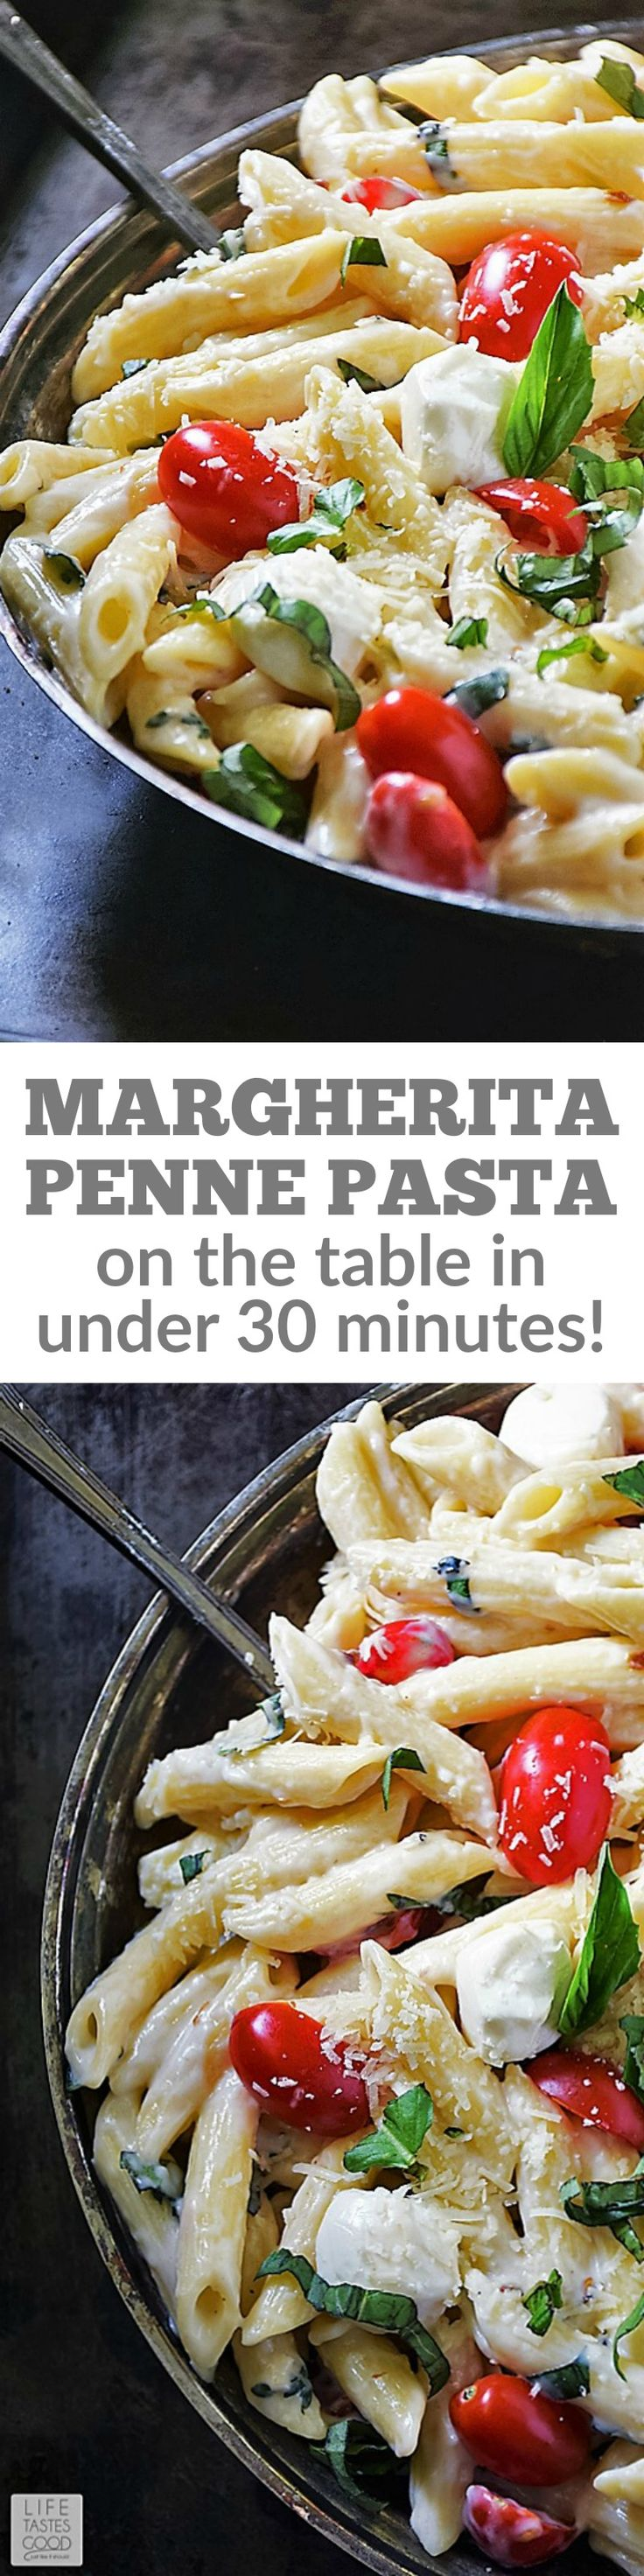 Margherita Penne Pasta | by Life Tastes Good made with fresh tomatoes, basil, and a cheesy milk based sauce is an easy recipe the whole family will love! I like how I can have this on the table in under 30 minutes! Many times the simplest recipes taste the best!